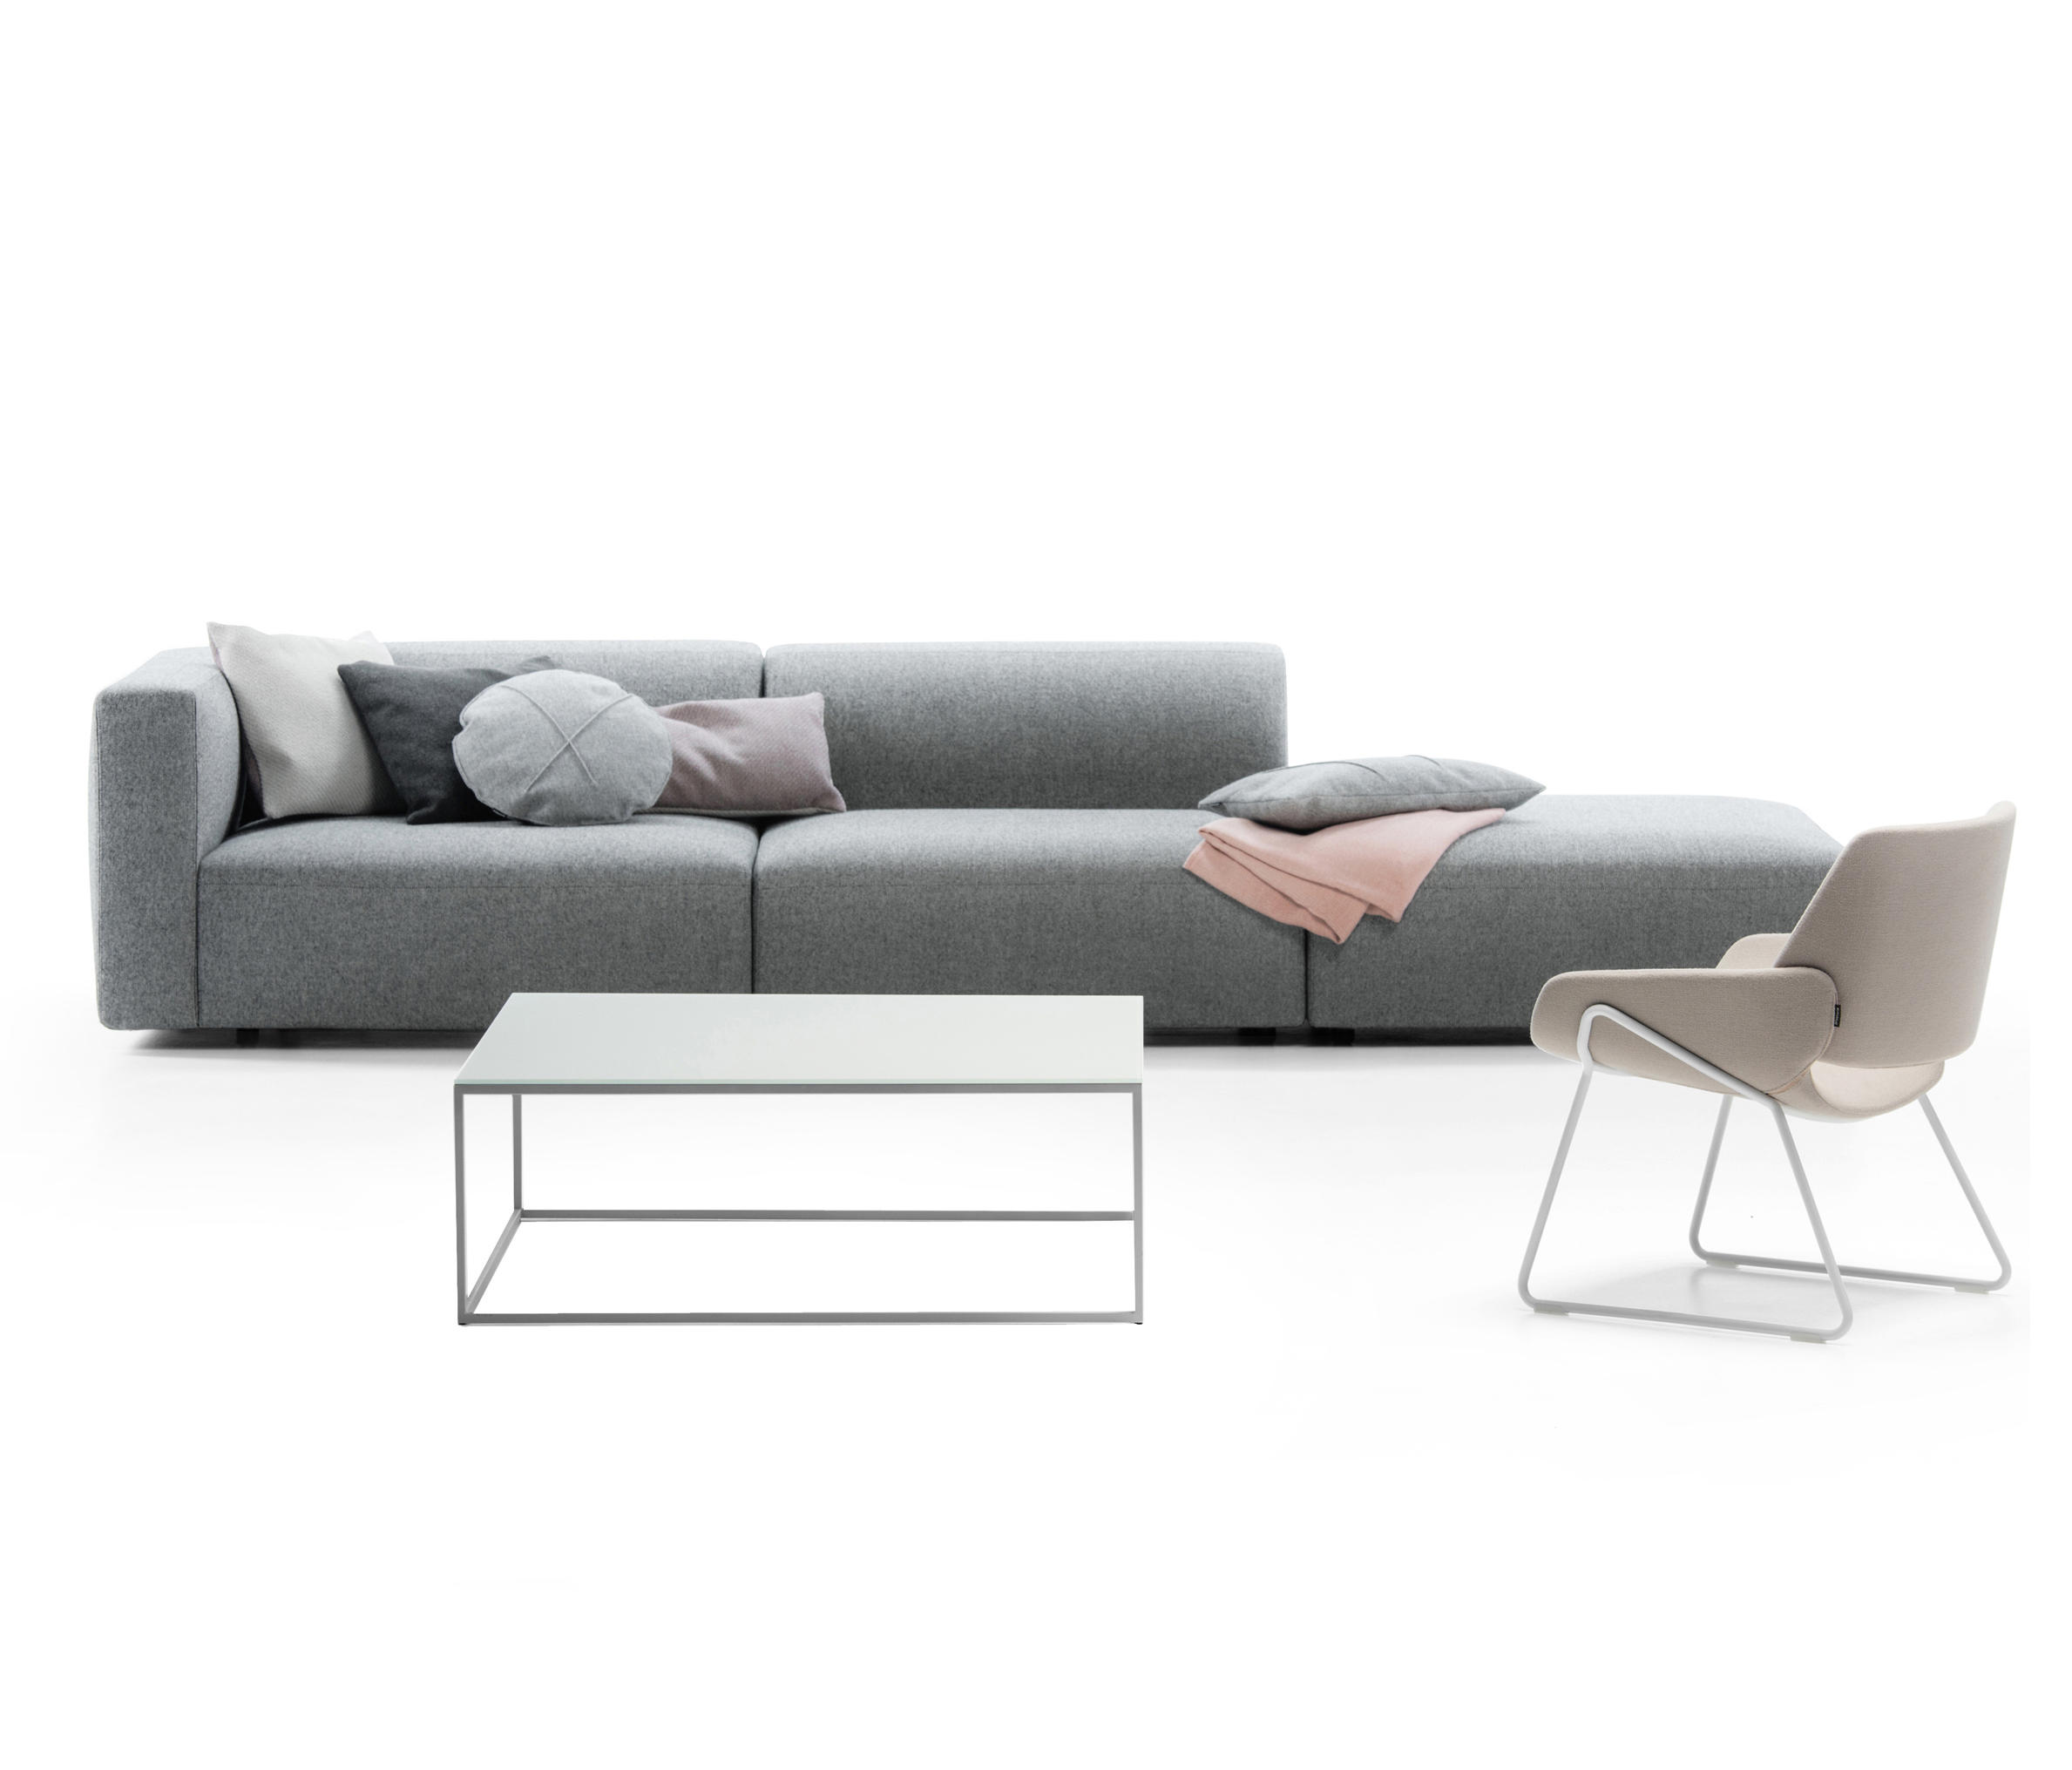 Match Sofa Lounge Sofas From Prostoria Architonic